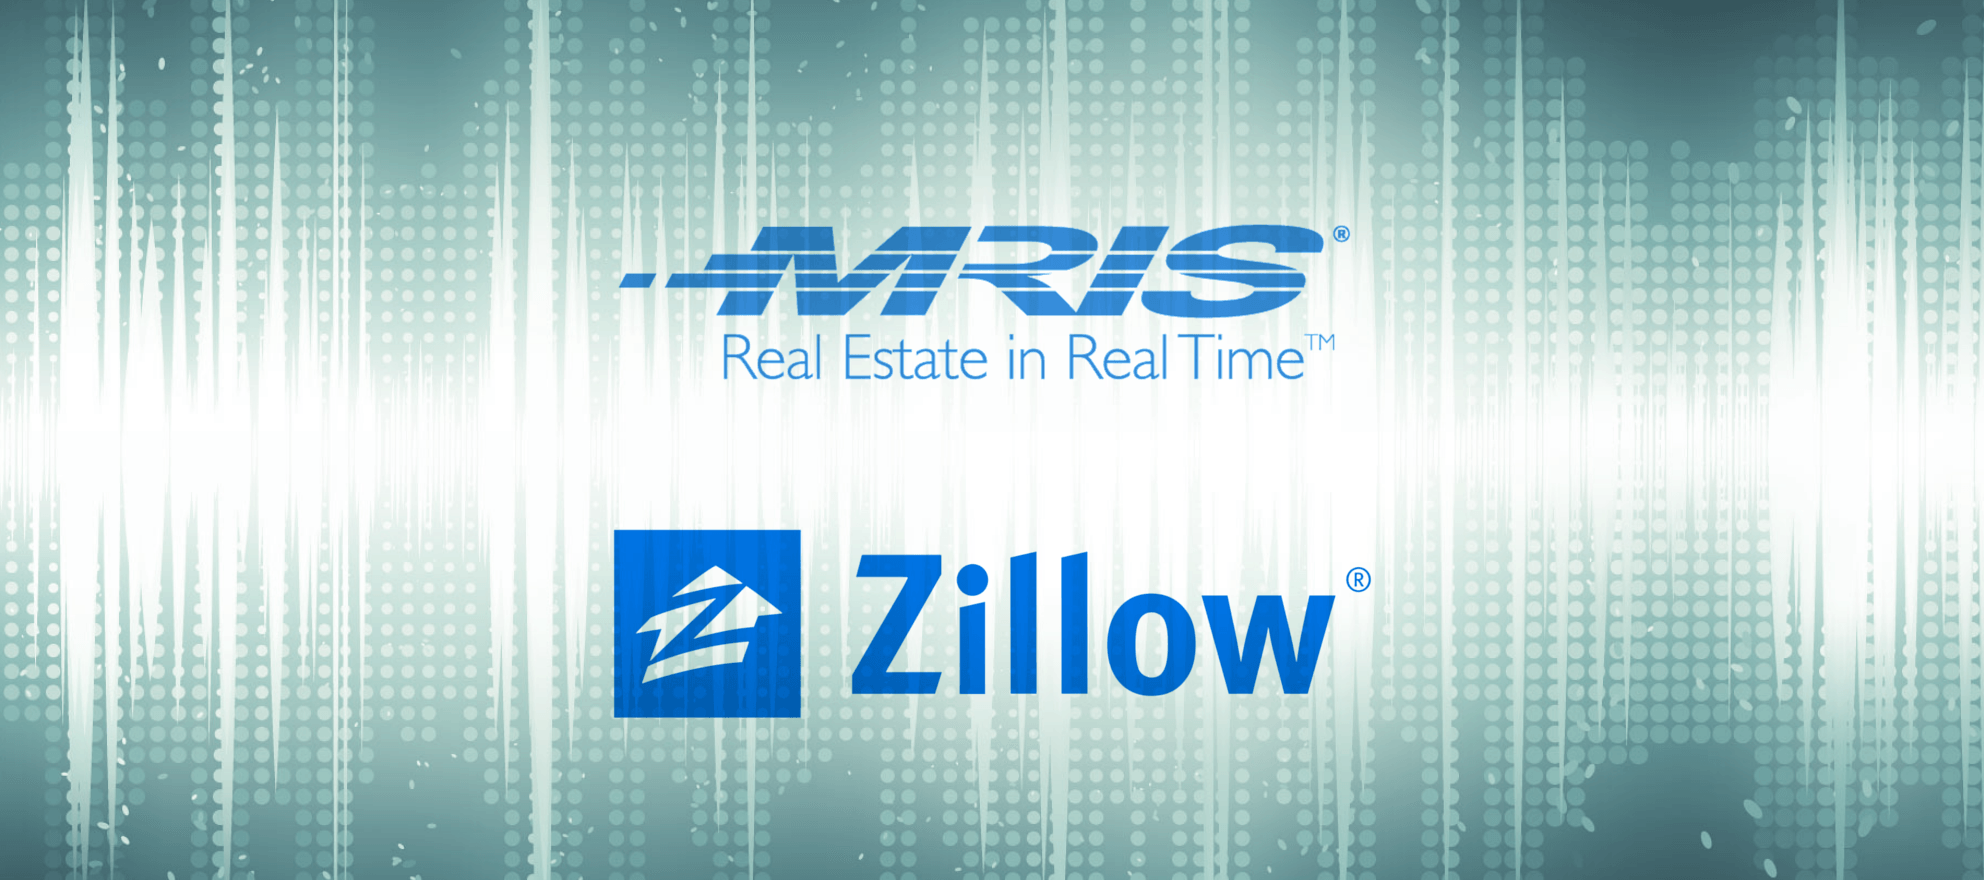 Zillow on the brink of deal for 50,000 MLS listings